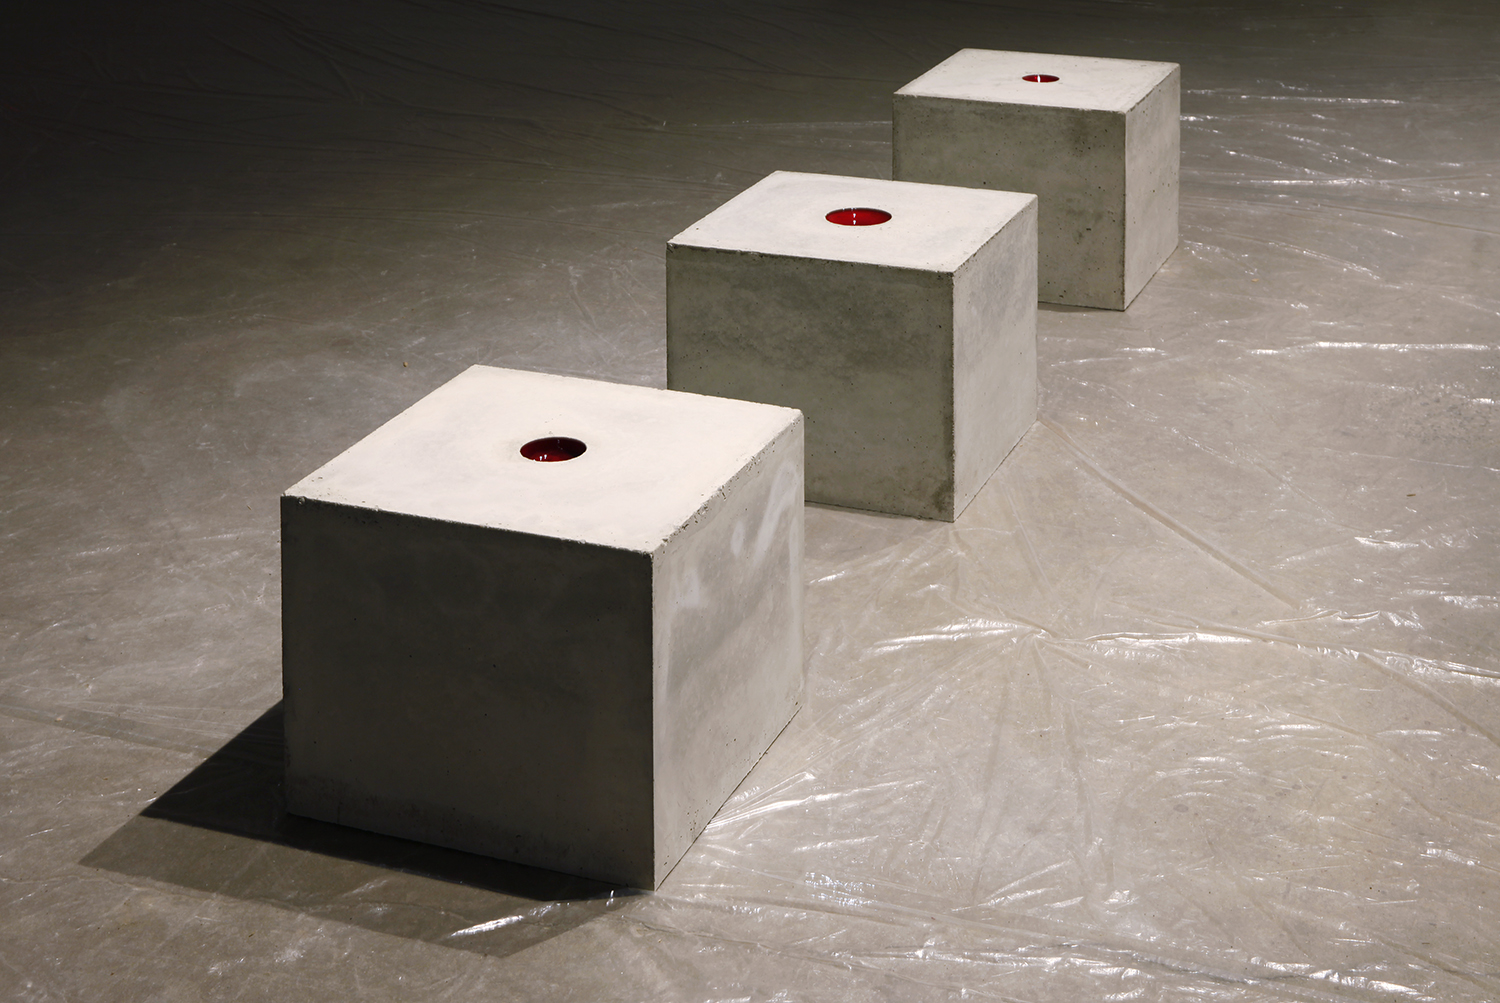 """Proud Flesh (2011) concrete and glass; 18"""" x 18"""" x 18""""  Installation view at Scrap Metal, Toronto, Canada"""